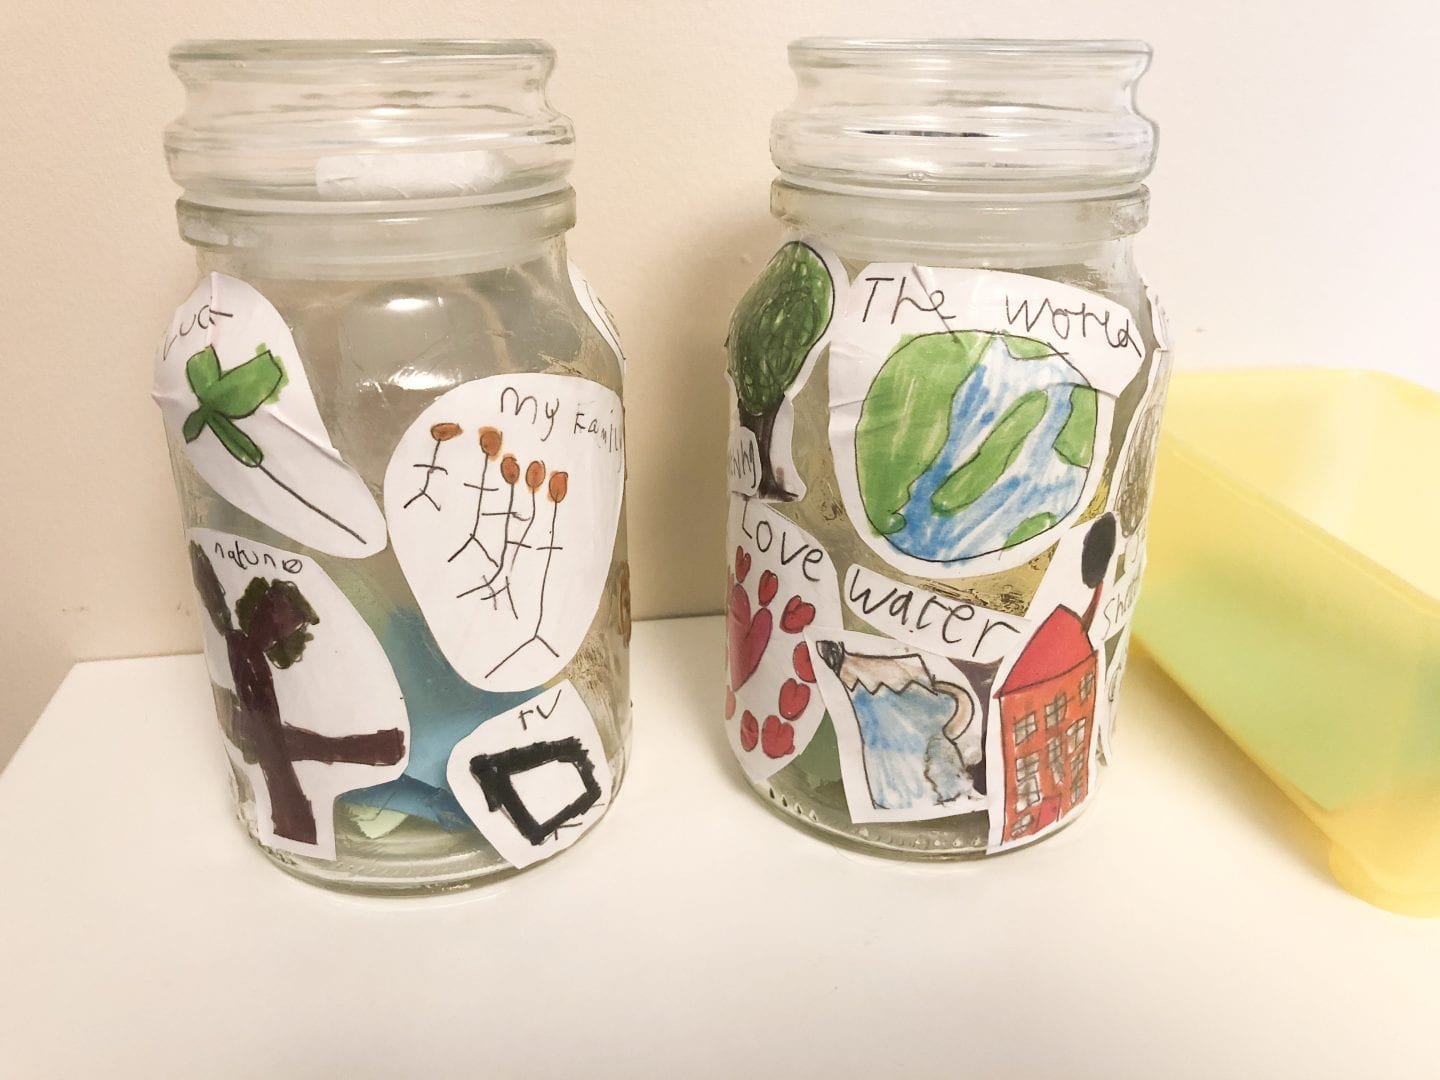 the back of the finsihed gratitude jars